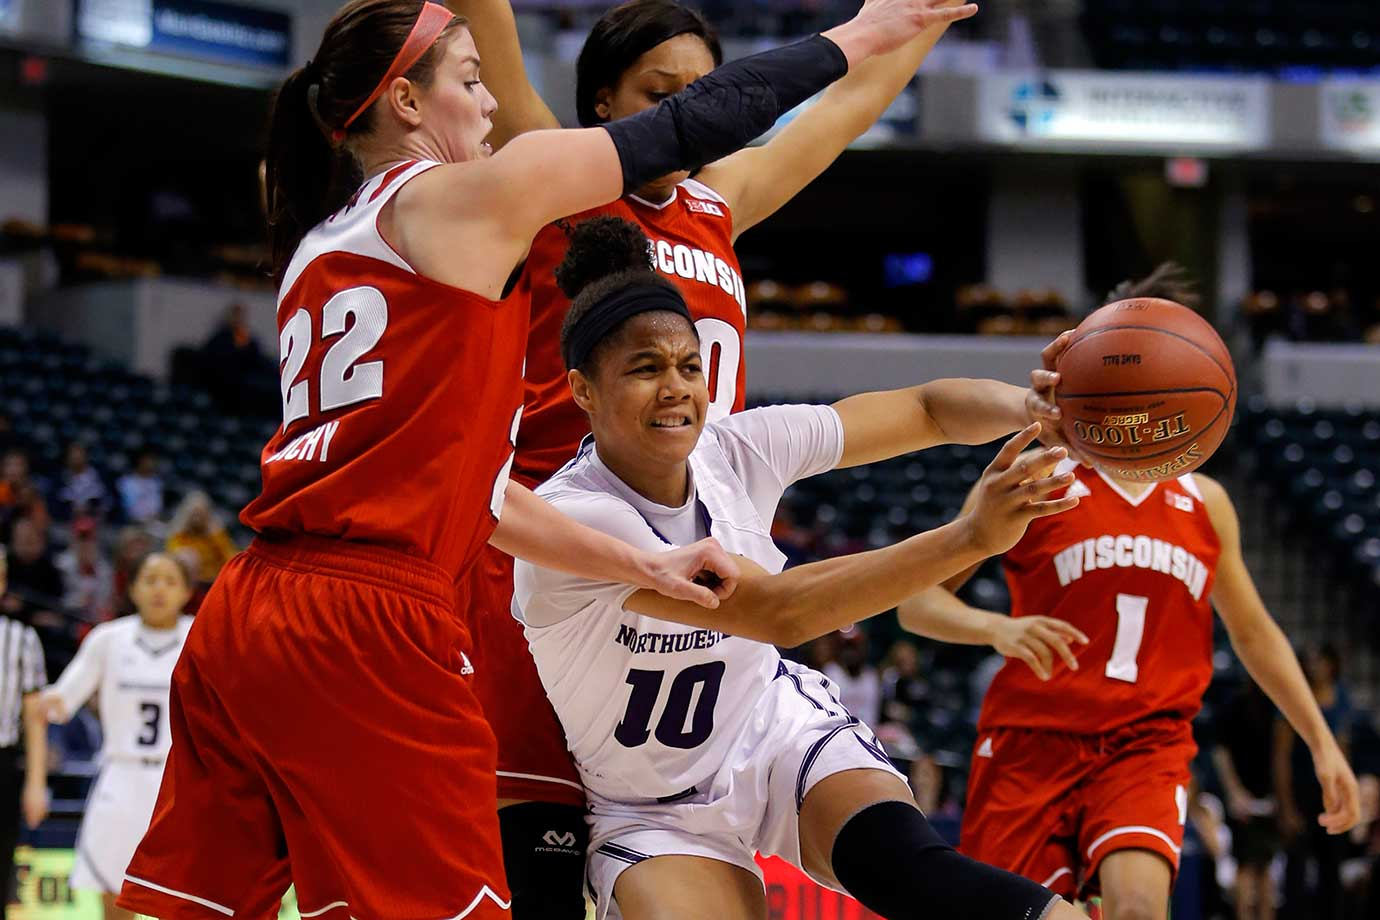 Northwestern's Nia Coffey makes a pass as she is stopped by Wisconsin's Tessa Cichy during the Big Ten Tournament.